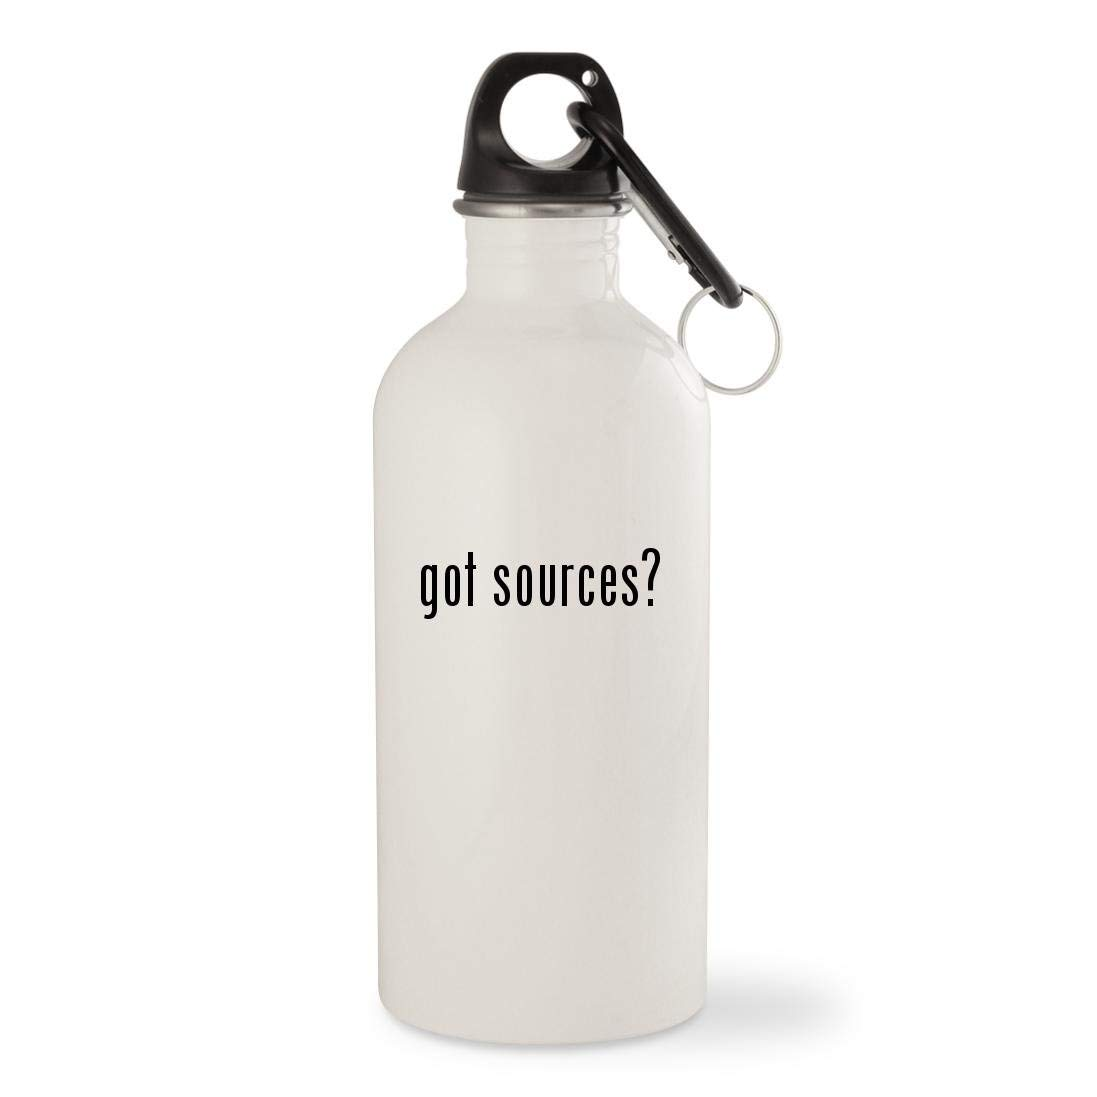 got sources? - White 20oz Stainless Steel Water Bottle with Carabiner